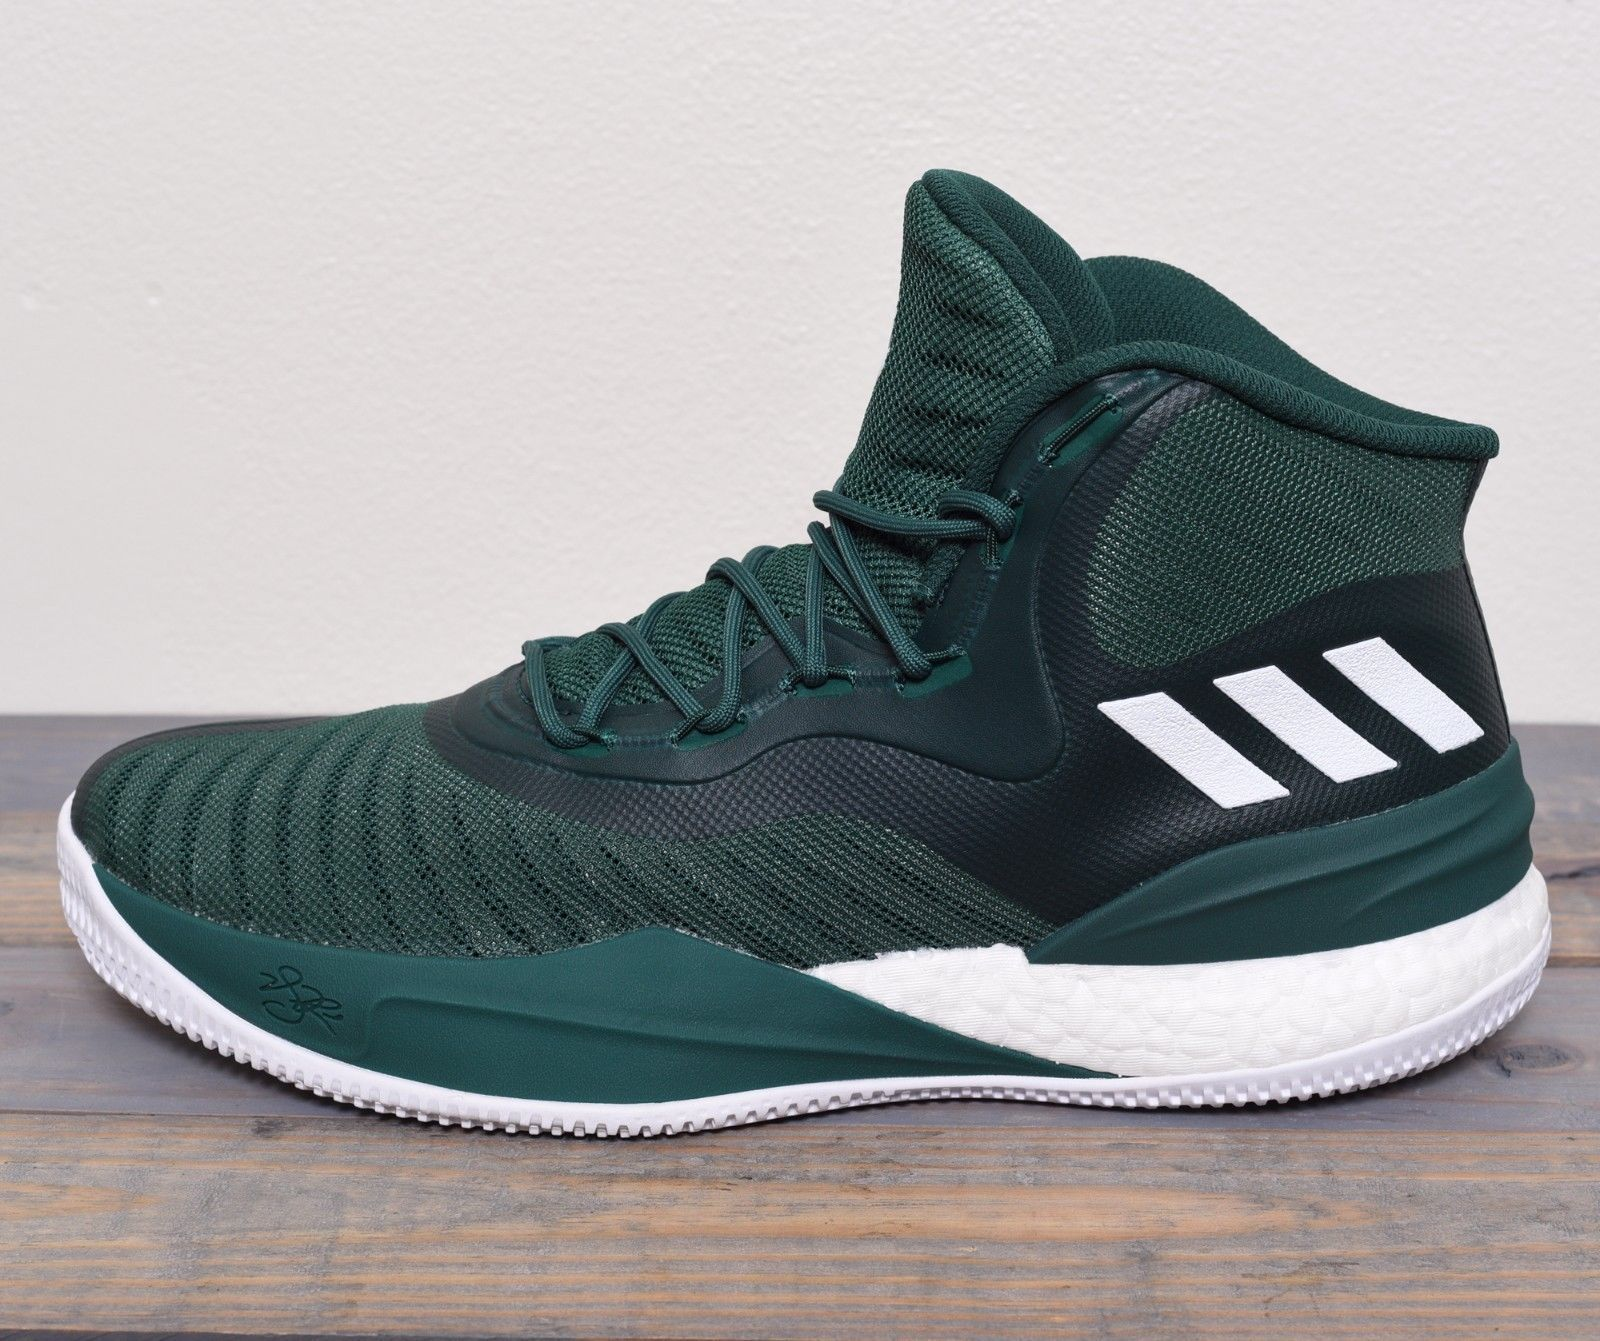 timeless design a2344 57fc0 Adidas D Rose Basketball Shoes Men Size 11.5 Sneaker NBA Green White New  CQ1628